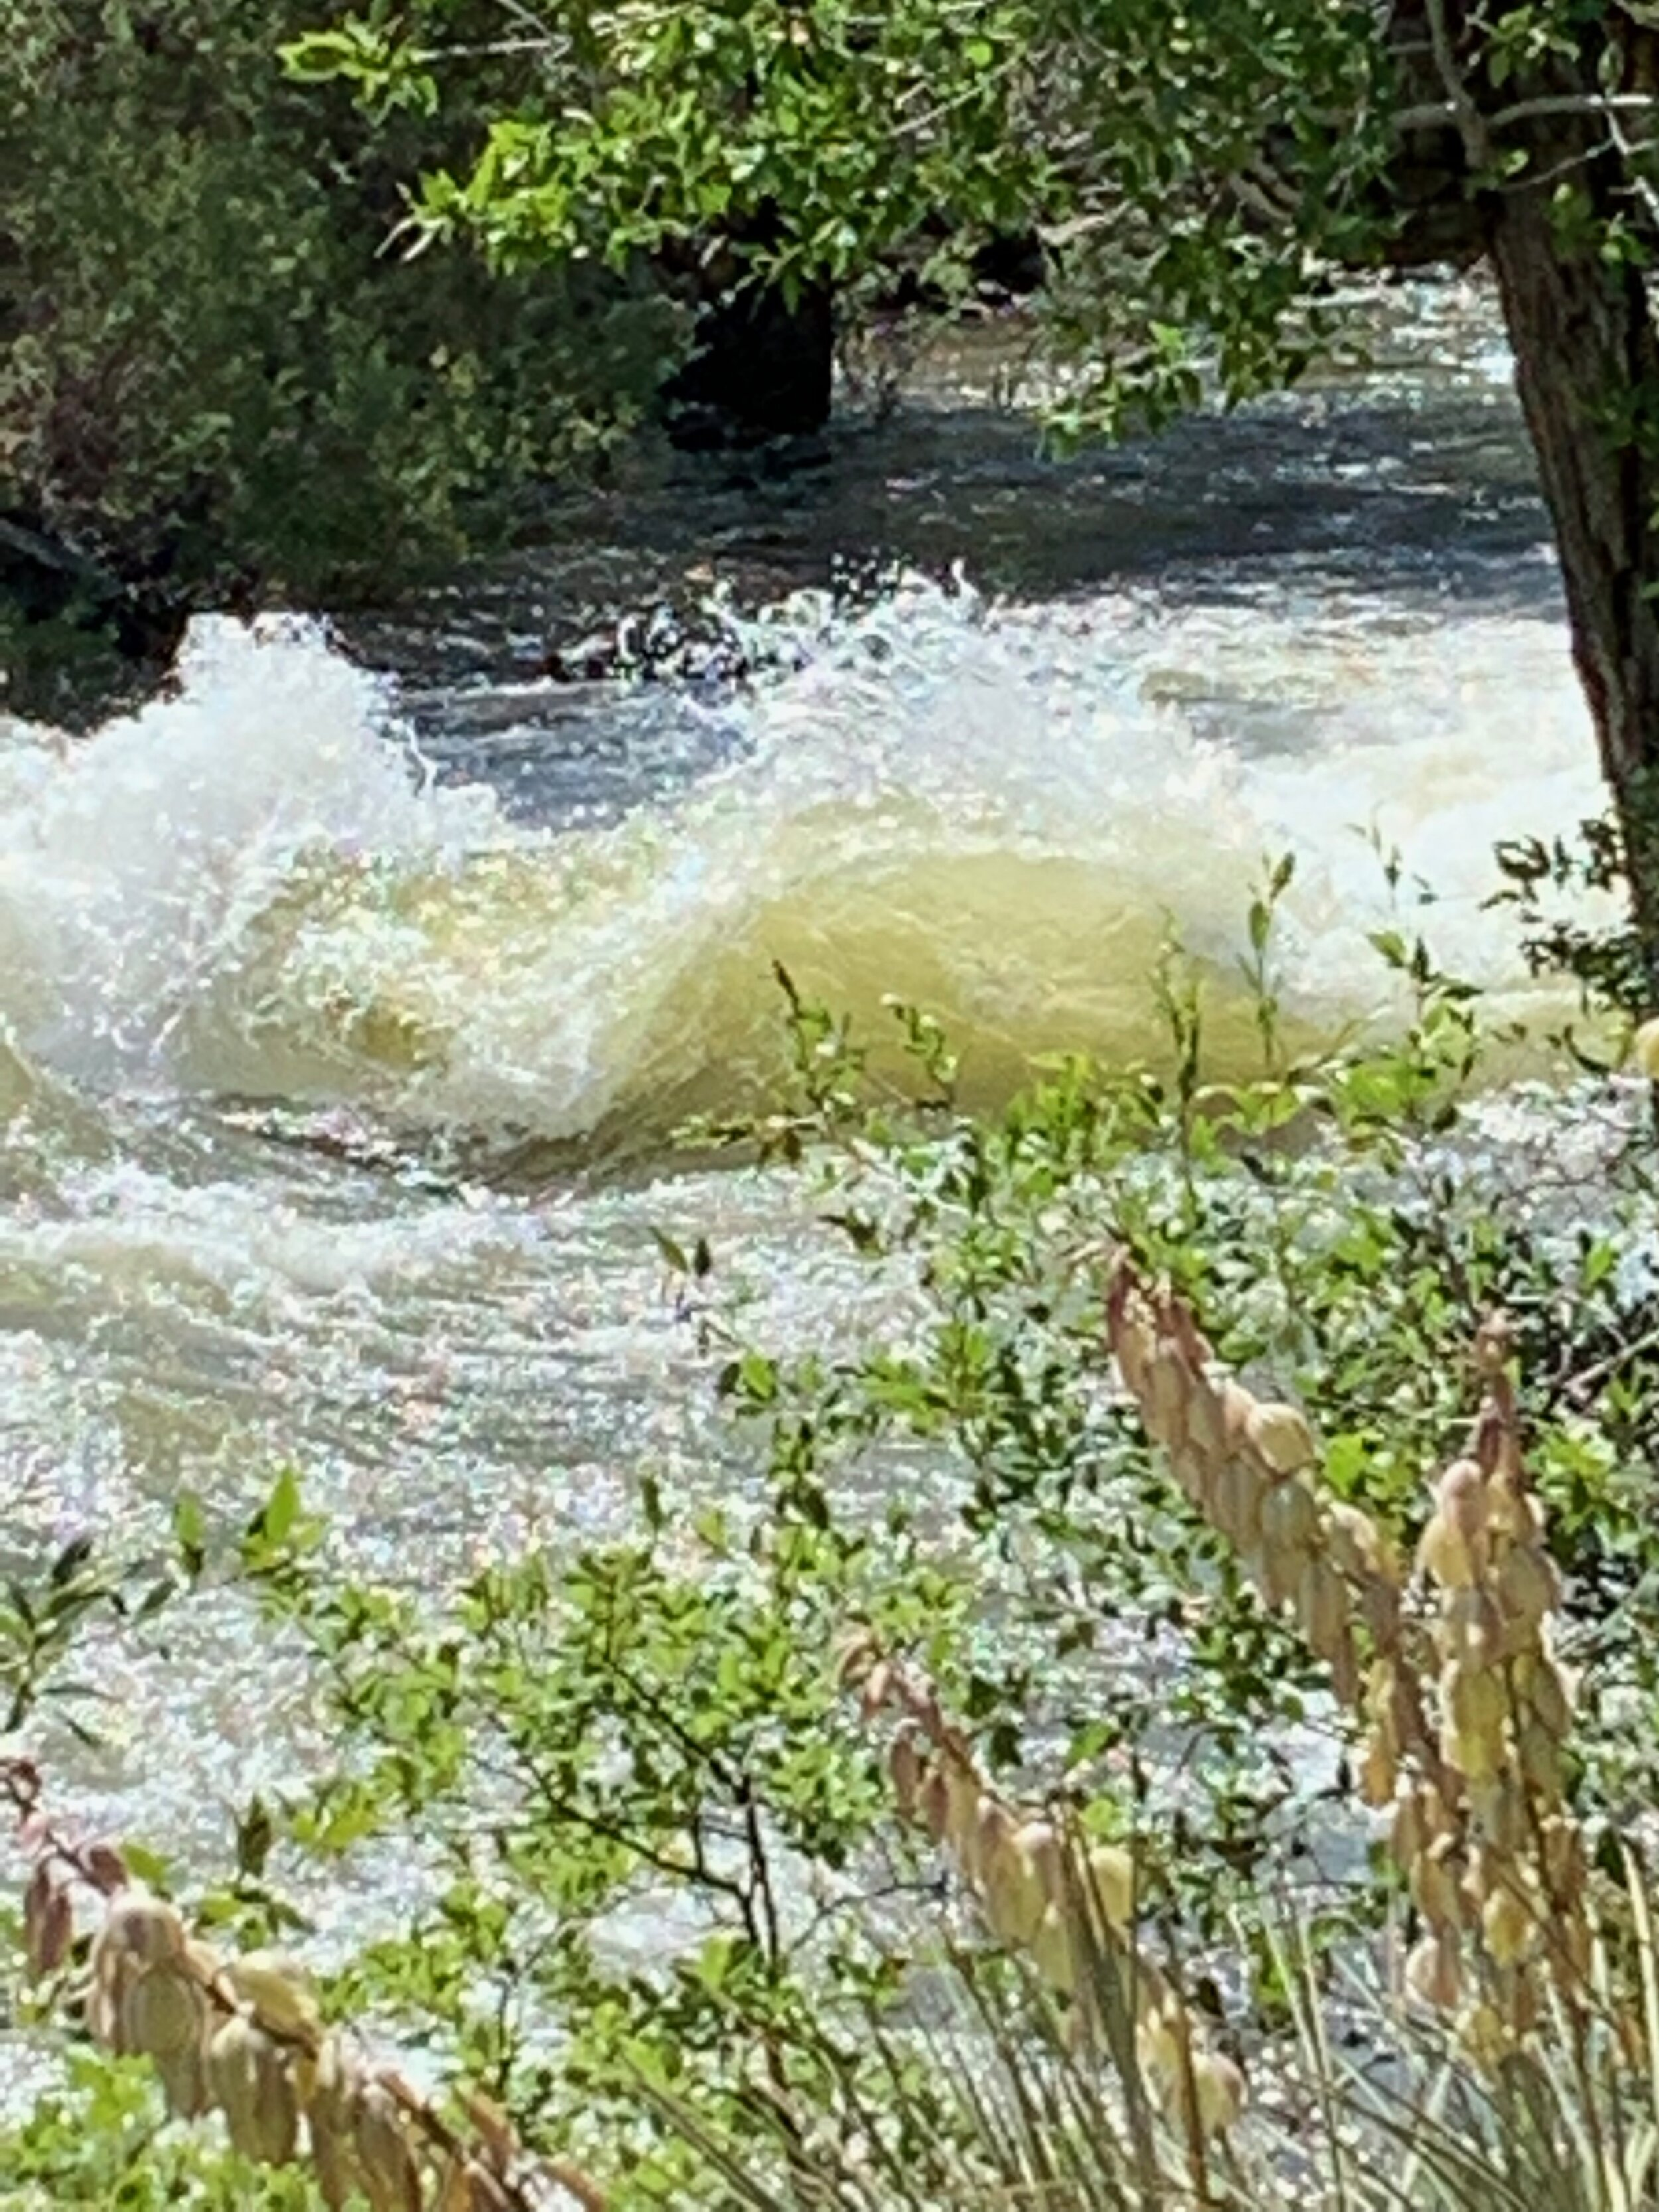 Some of the renowned white-water of the Arkansas River